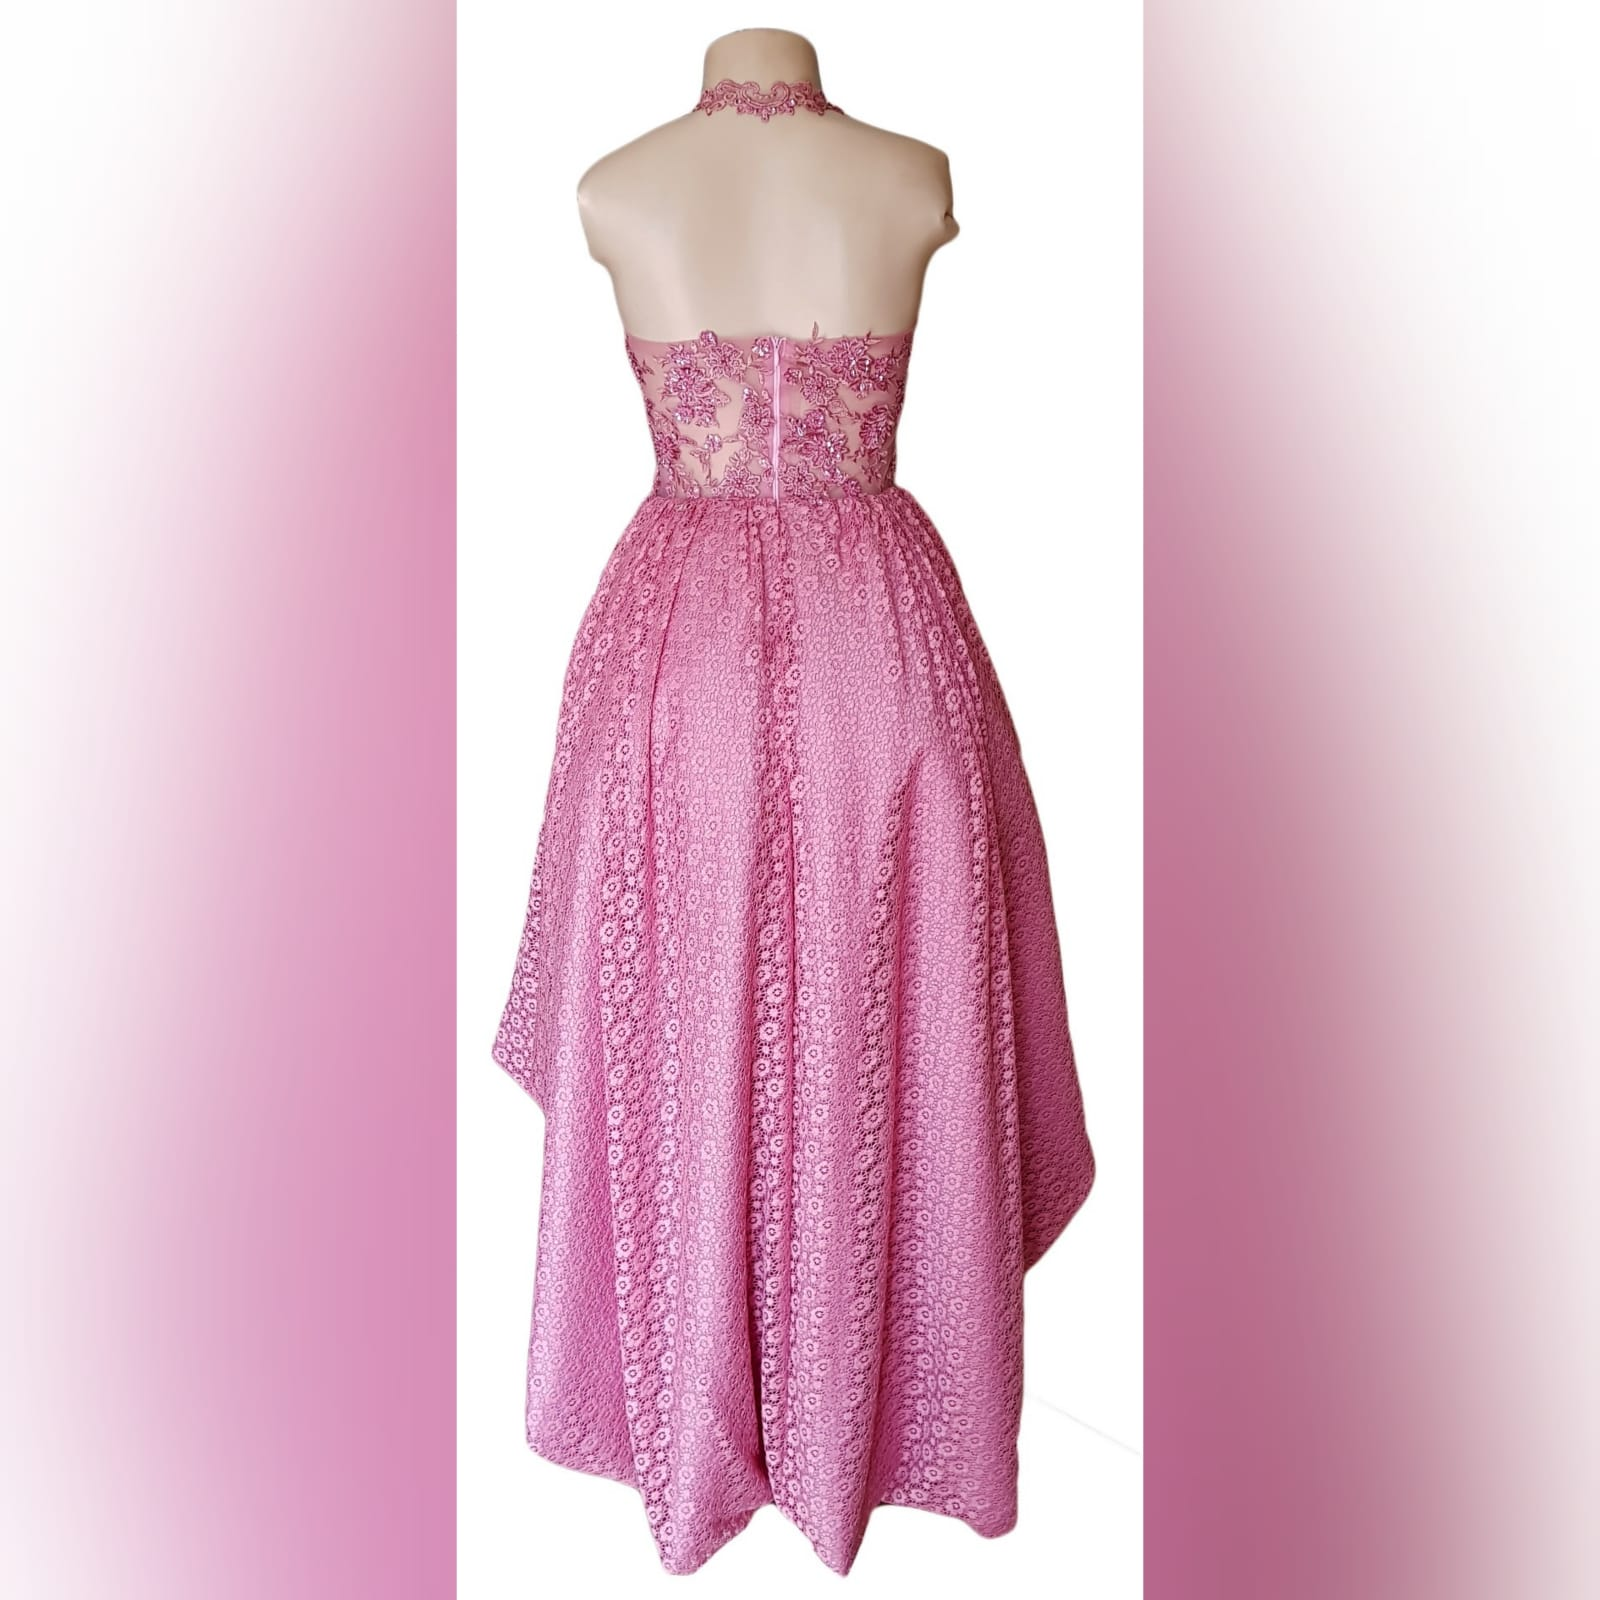 High low dusty pink prom dress 8 high low dusty pink prom dress with an illusion bodice detailed with beaded lace. Bottom fully laced.